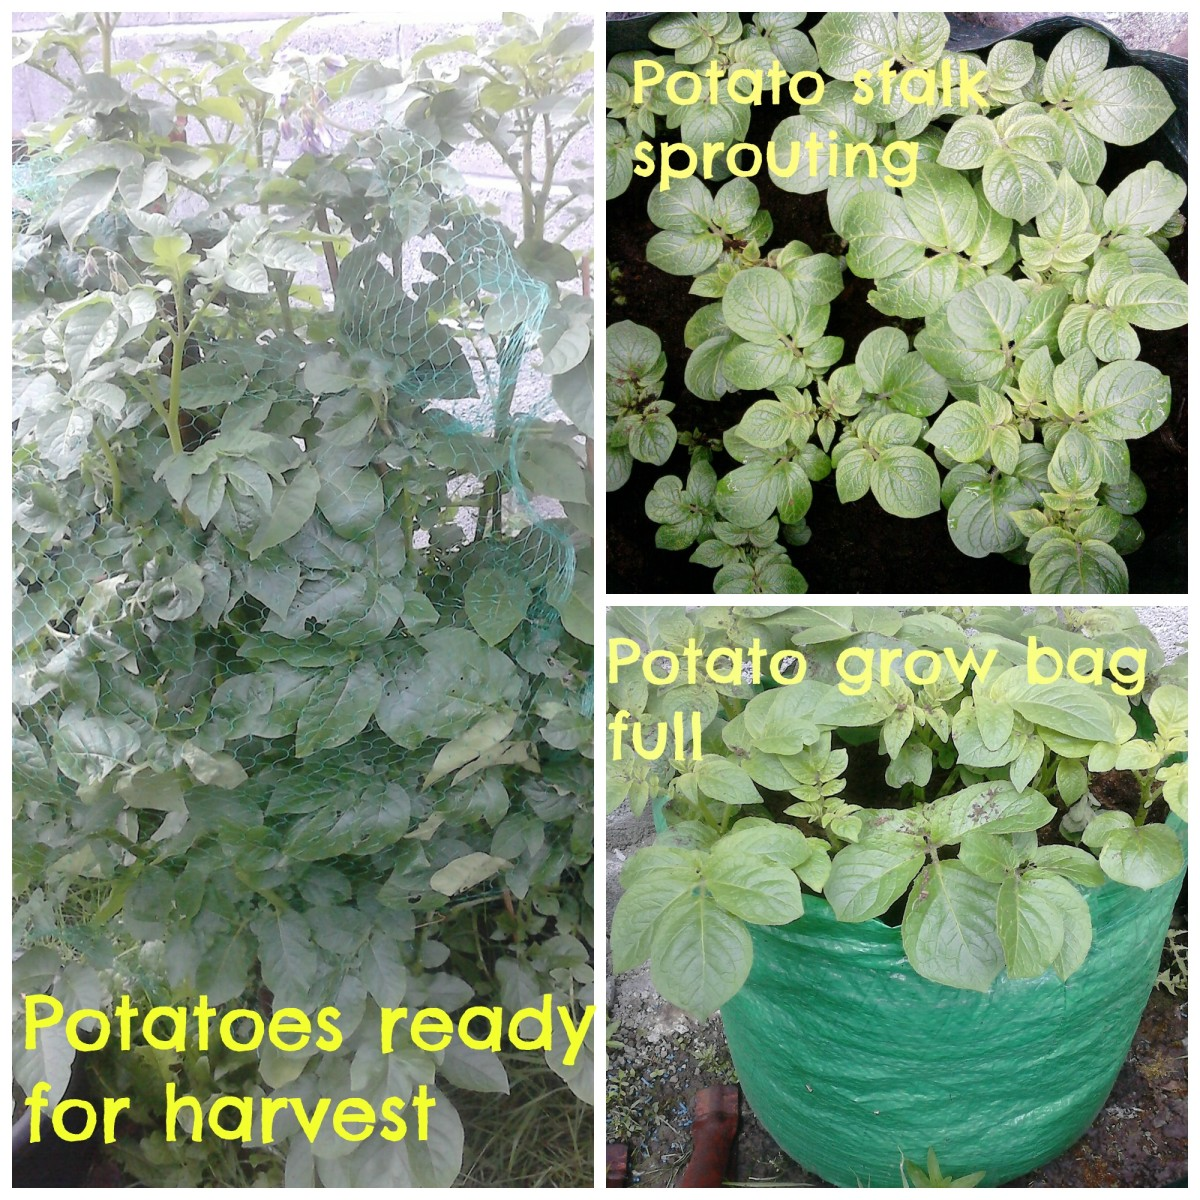 Each week you will see an increase in the size of the potato stalks in the potato grow bags.